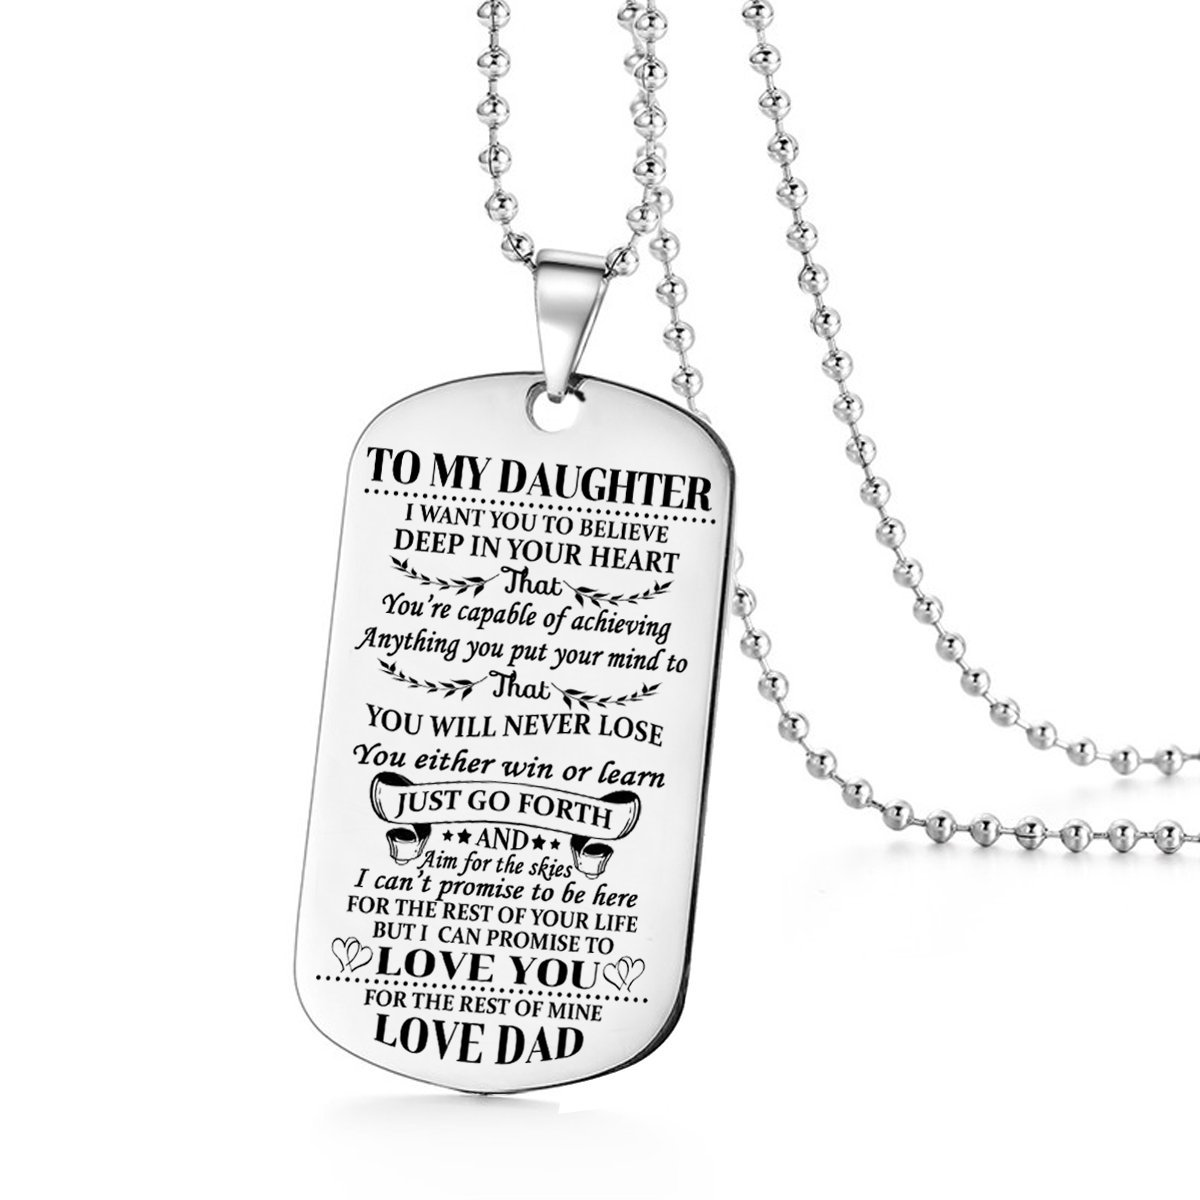 To My Daughter I Want You To Believe Love Dad Dog Tag Military Air Force Navy Coast Guard Necklace Ball Chain Gift for Best Daughter Birthday Graduation Stainless Steel